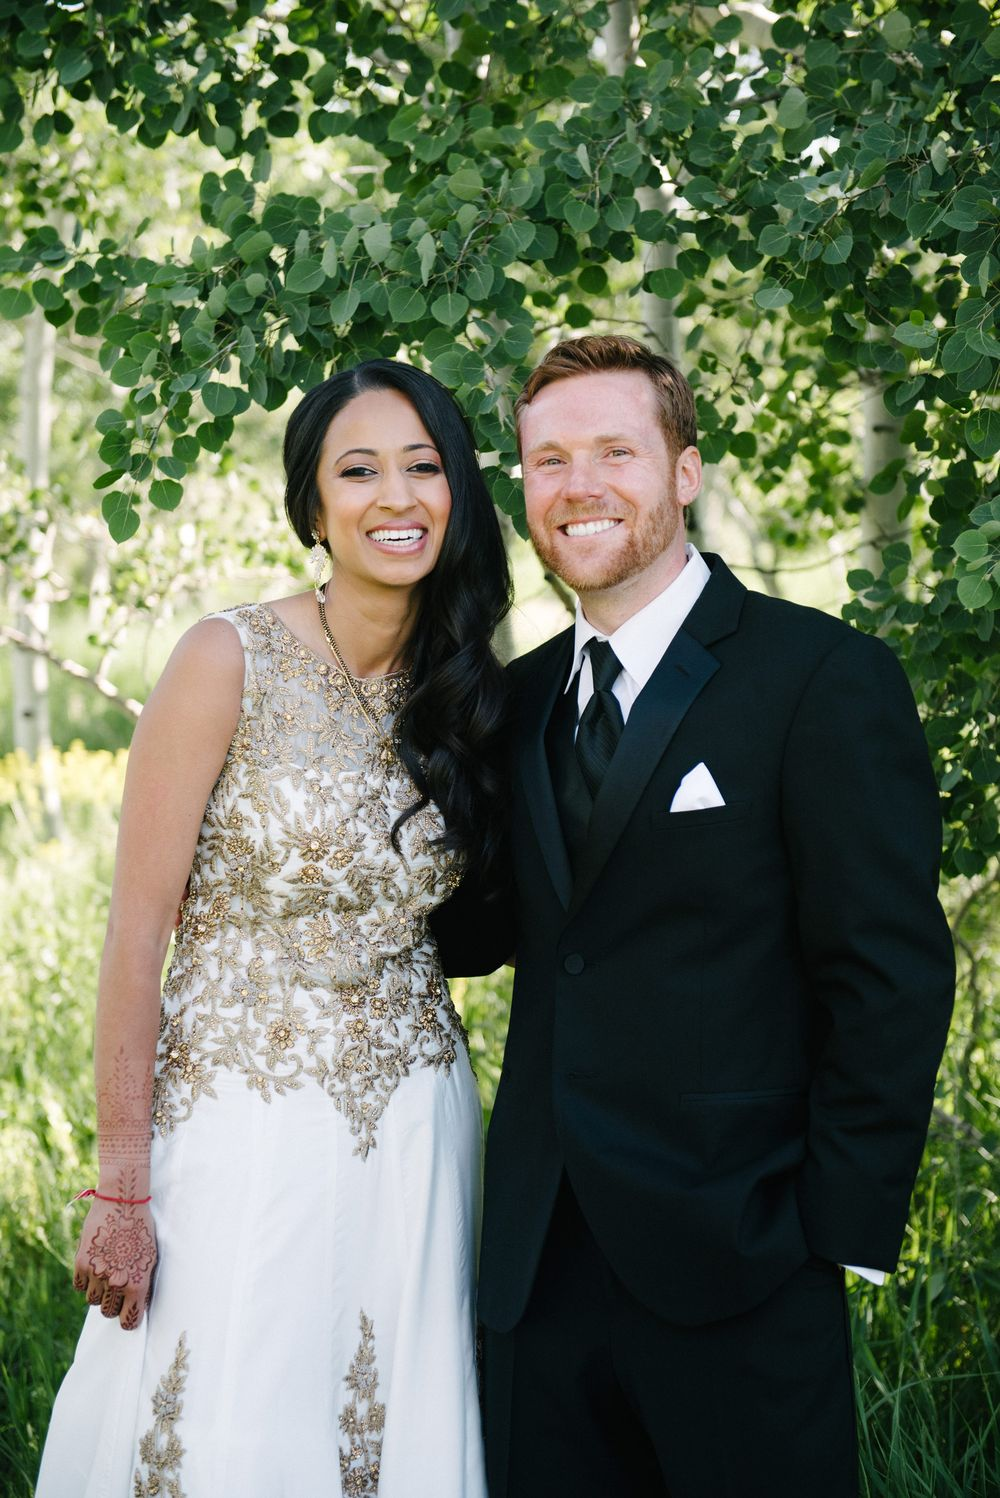 Reema_Spencer_Temple_Har_Shalom_Park_City_Utah_Couple_Formal_Portrait.jpg